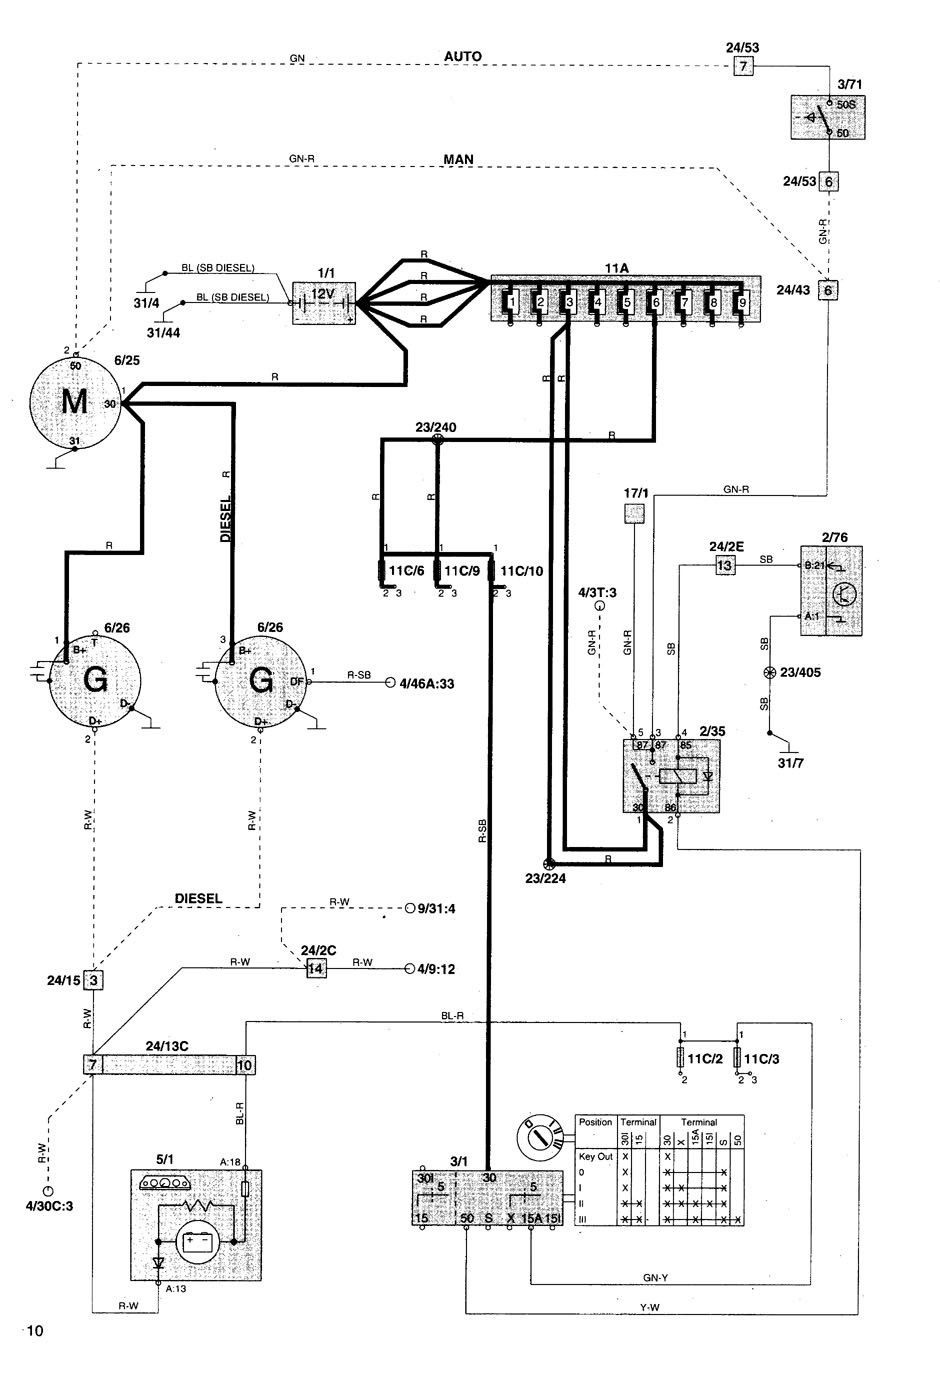 hight resolution of wiring diagram 2003 volvo c70 auto alarm get free image about wiring volvo c70 front suspension diagram volvo get free image about wiring